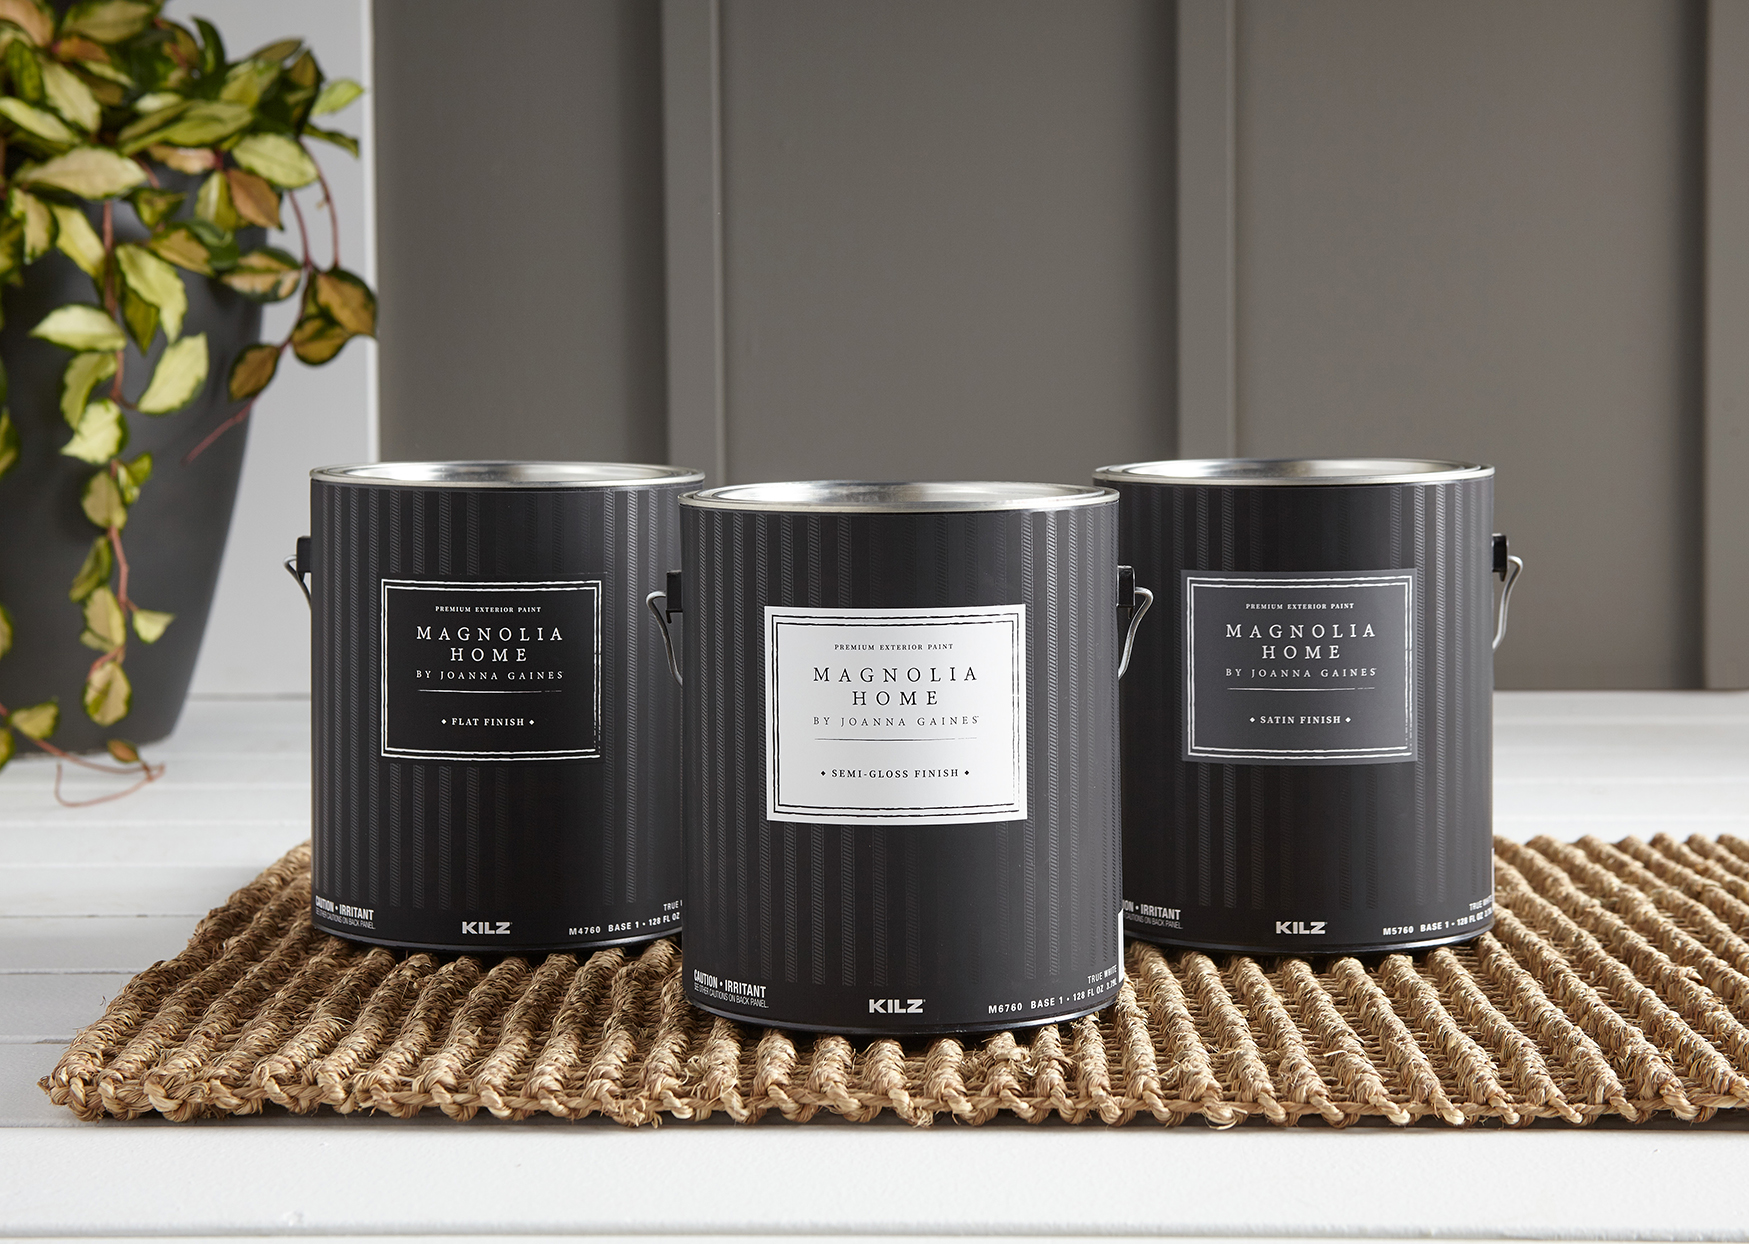 joanna gaines exterior paint cans